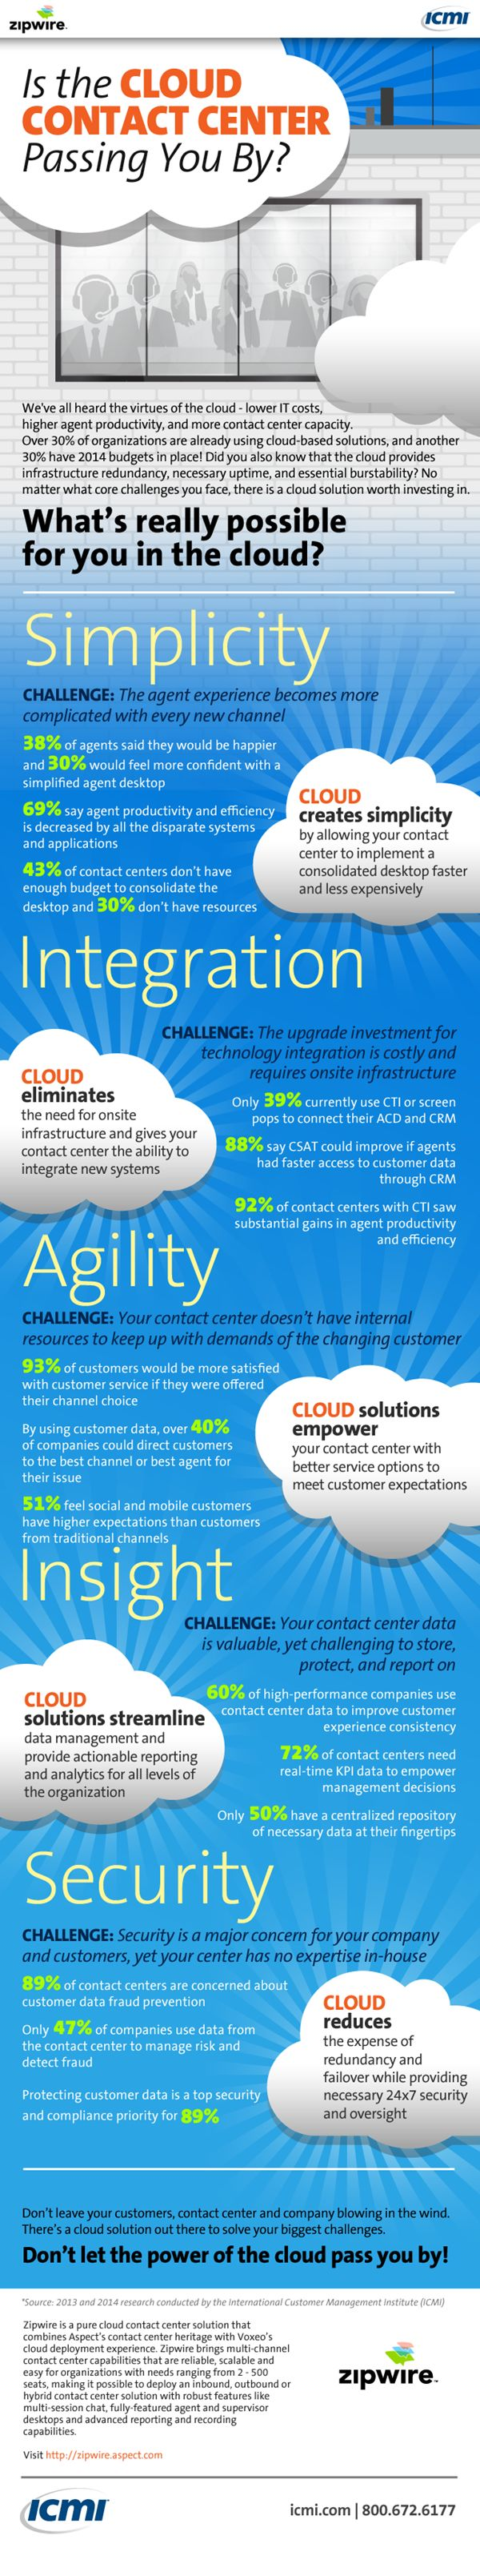 It's easy to see why contact centers are moving the cloud - the benefits are numerous!